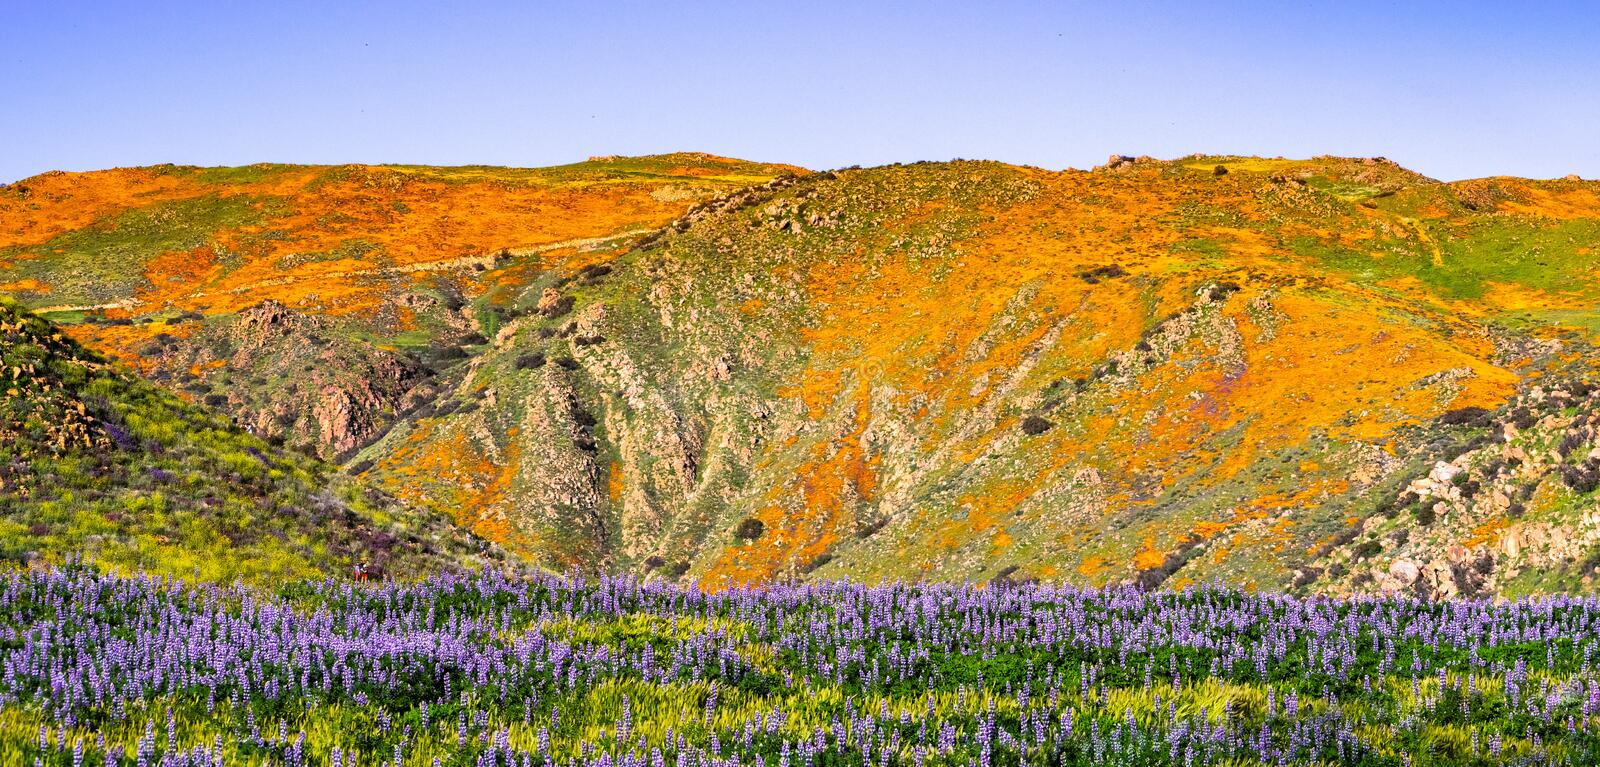 Landscape in Walker Canyon during the superbloom, California poppies covering the mountain valleys and ridges, Lake Elsinore,. South California royalty free stock photos